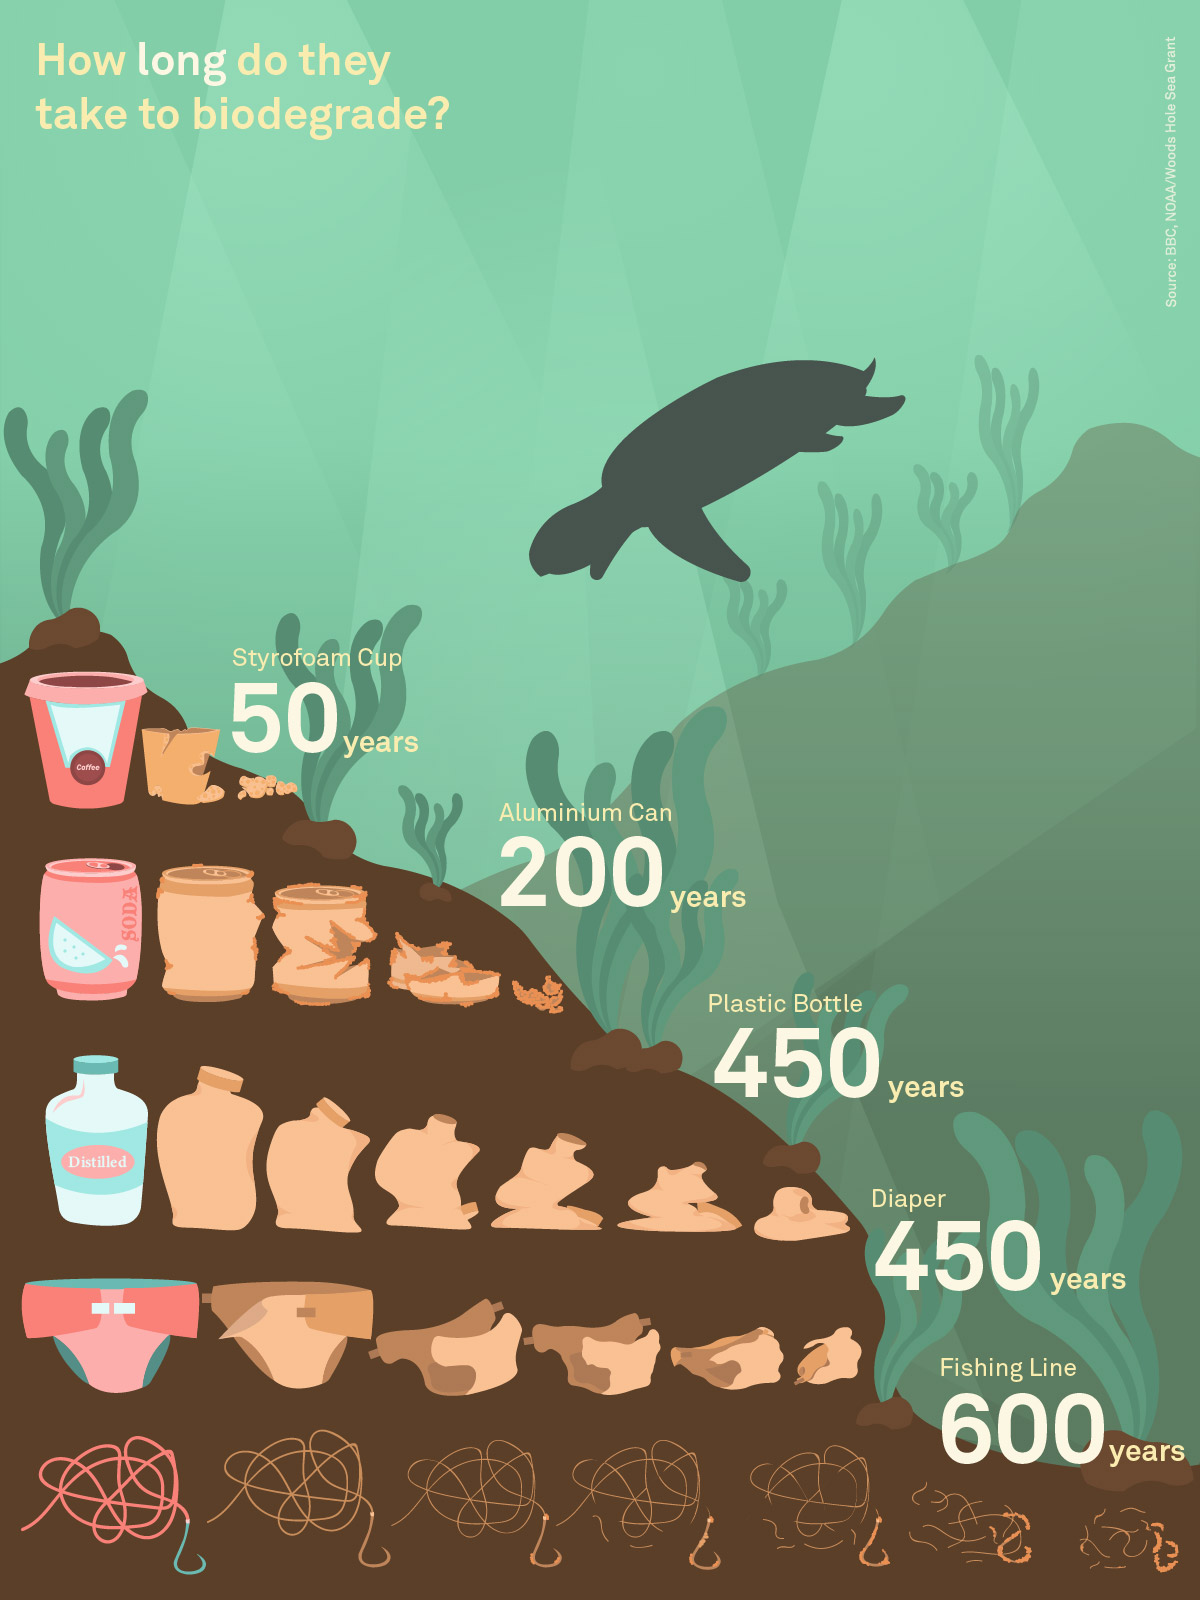 An infographic show the duration to biodegrade various products.